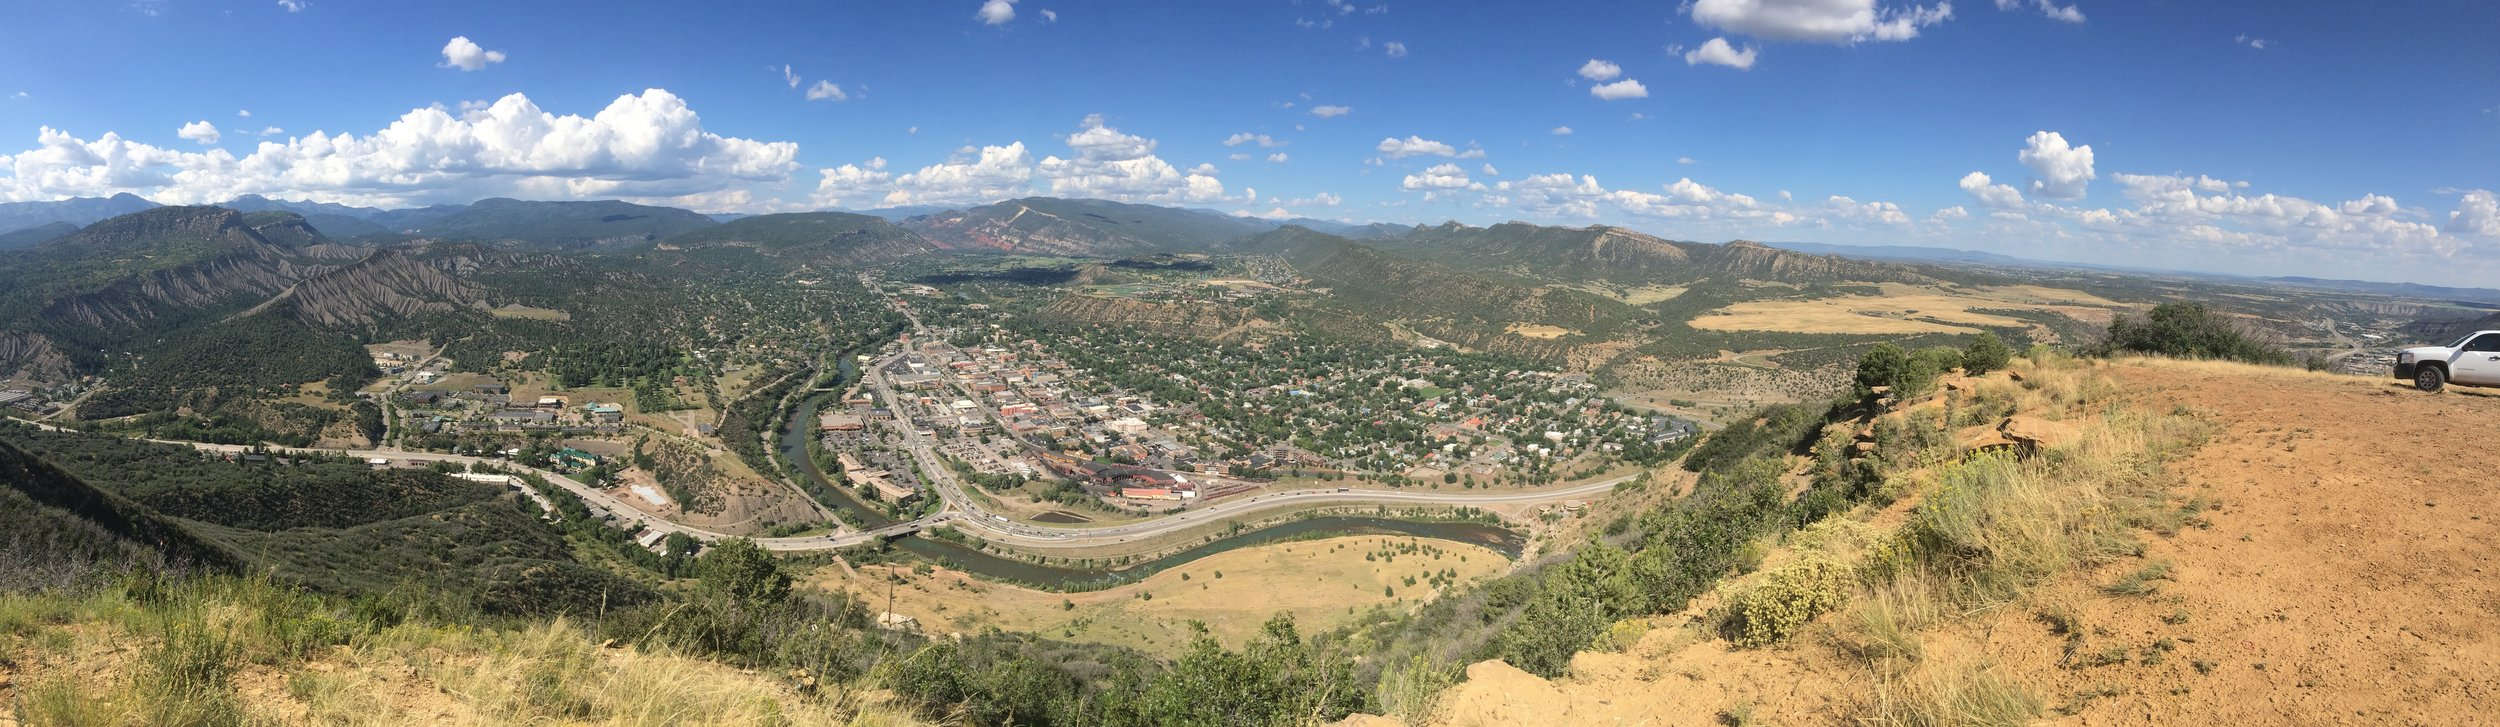 smelter mountain 3 pano.jpg